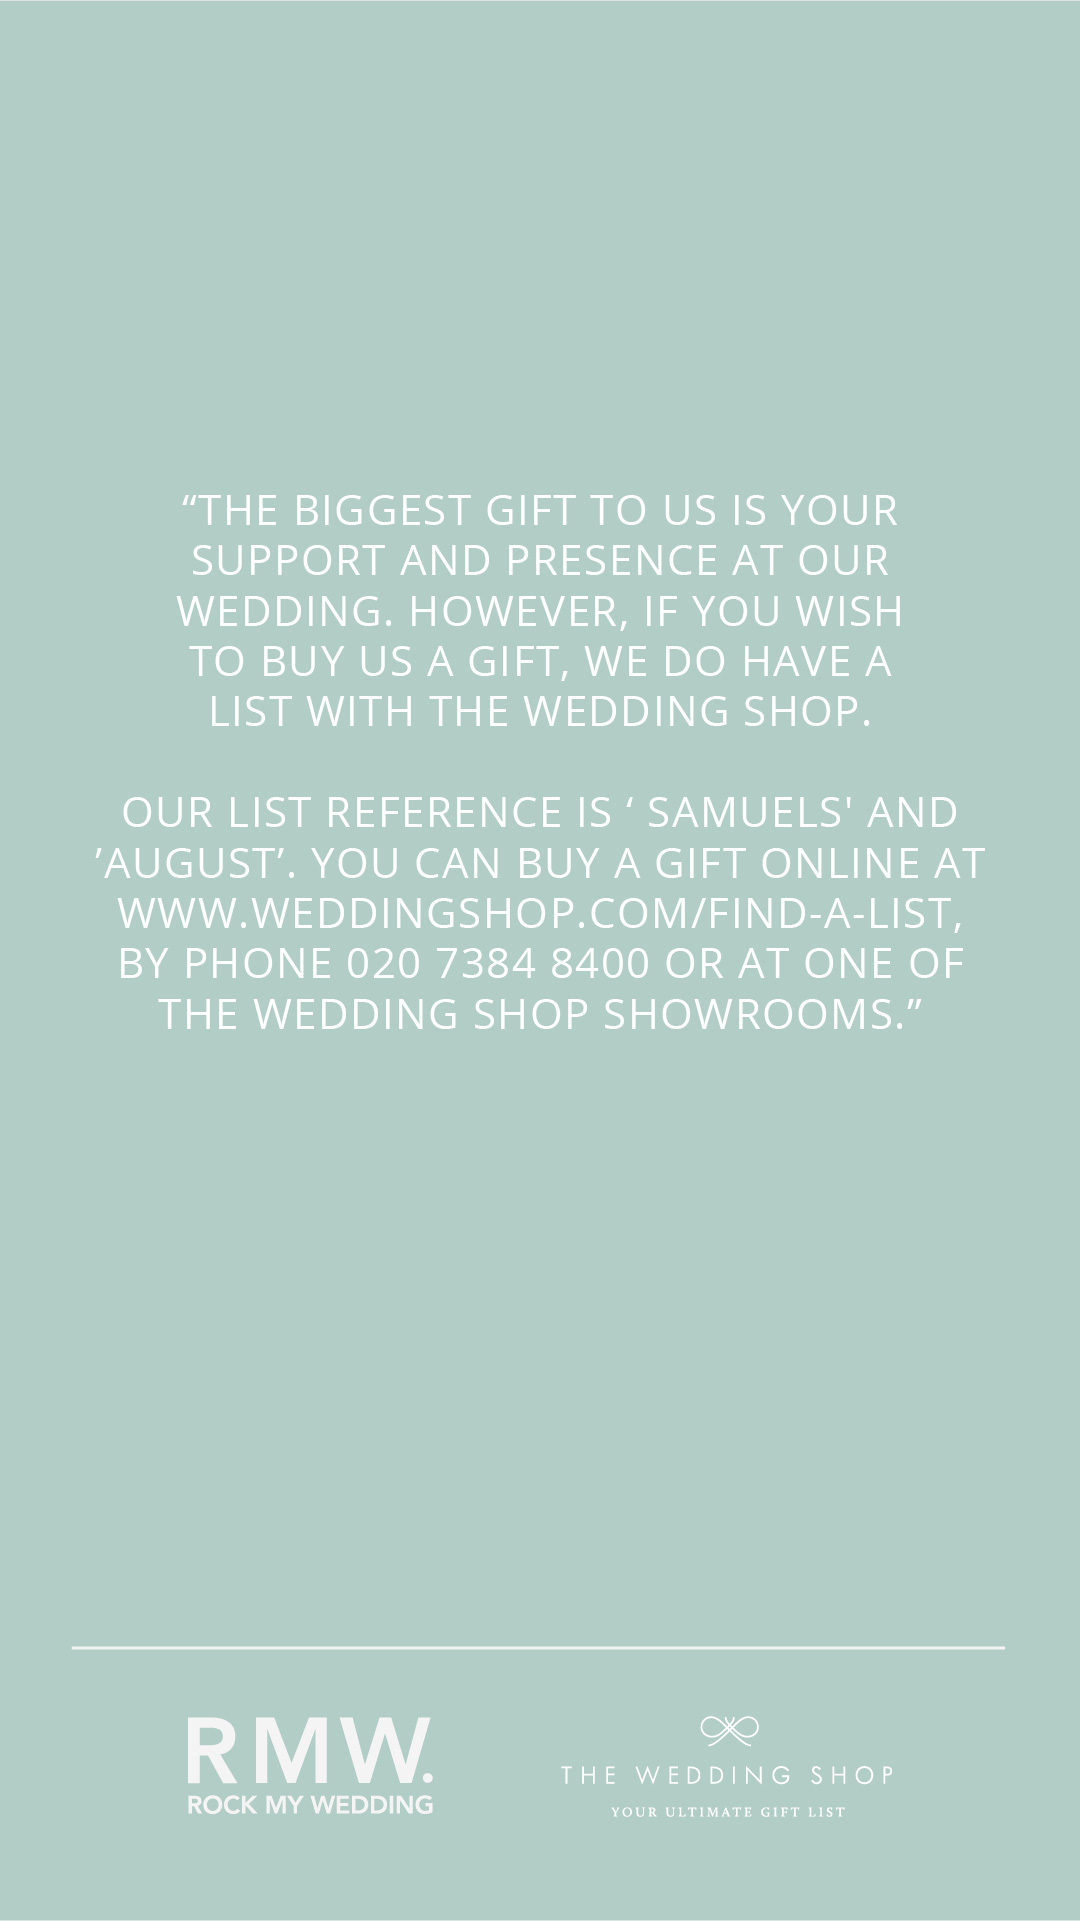 how to ask for wedding presents gift list with the wedding shop